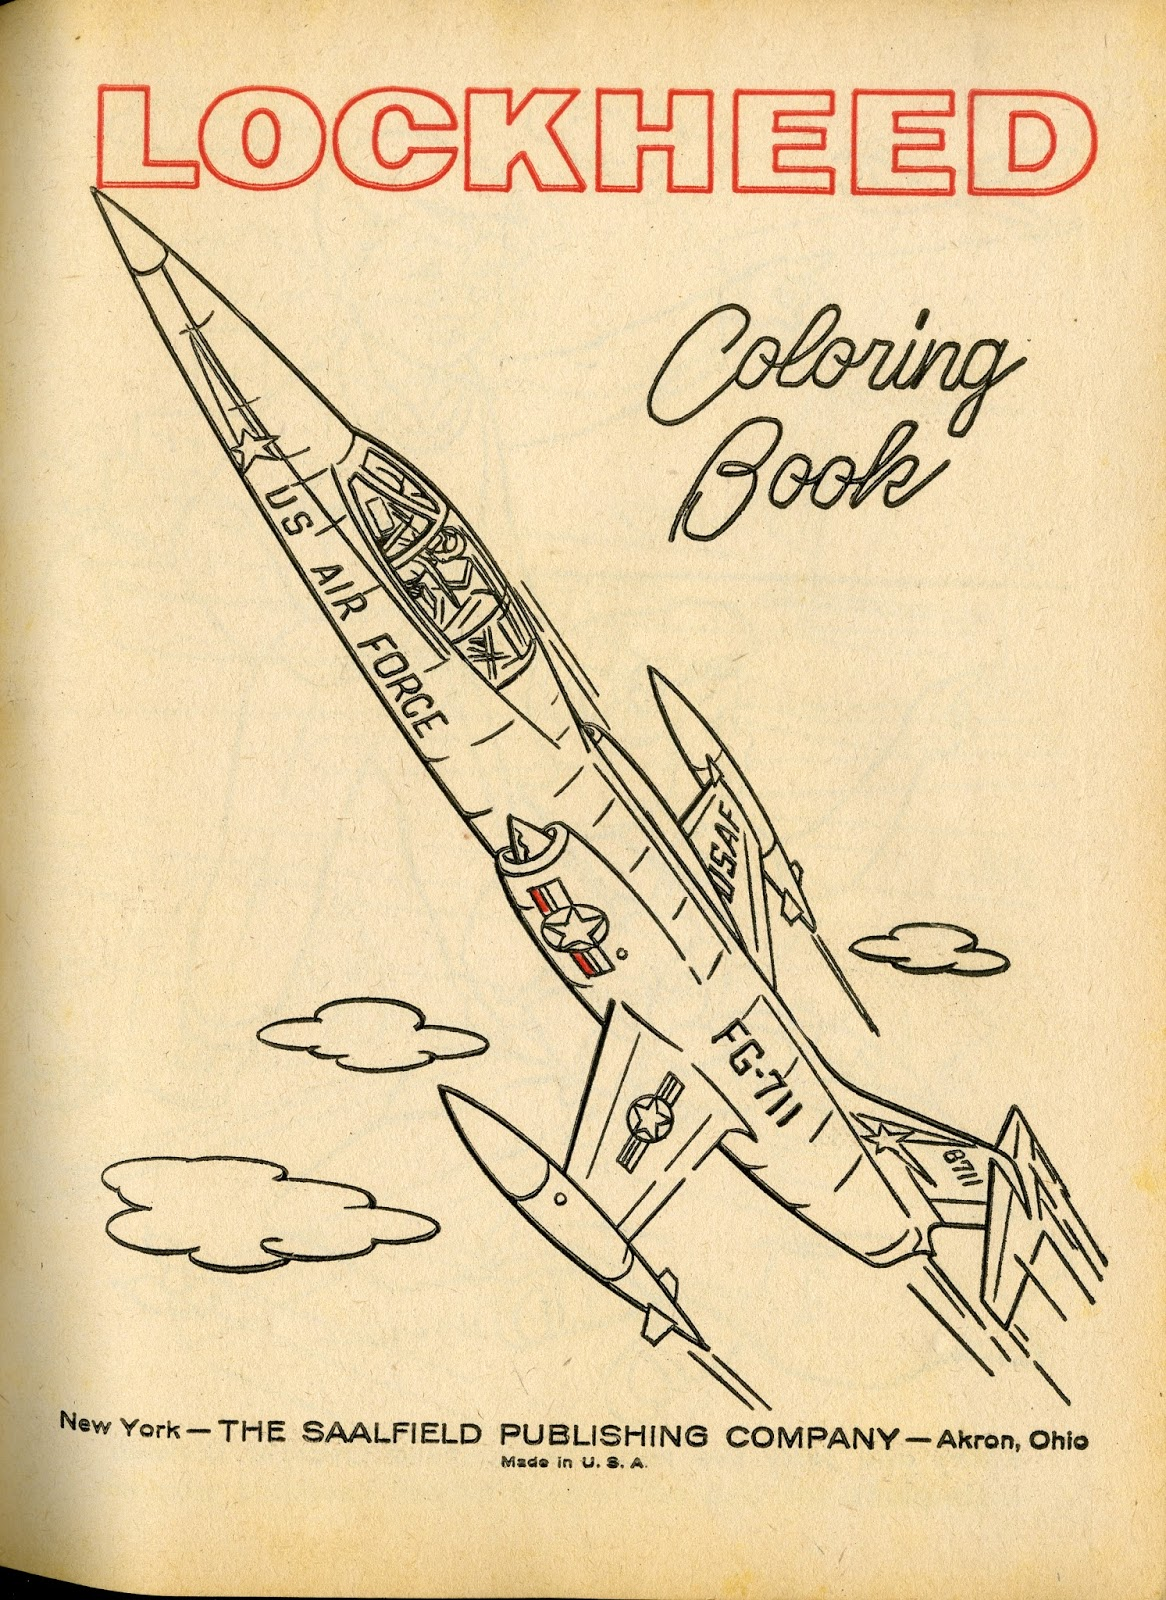 Lockheed Coloring Book Visit With Jerry And Kathy New York Saalfield Pub Co 64 P 27 Cm 1615 1960